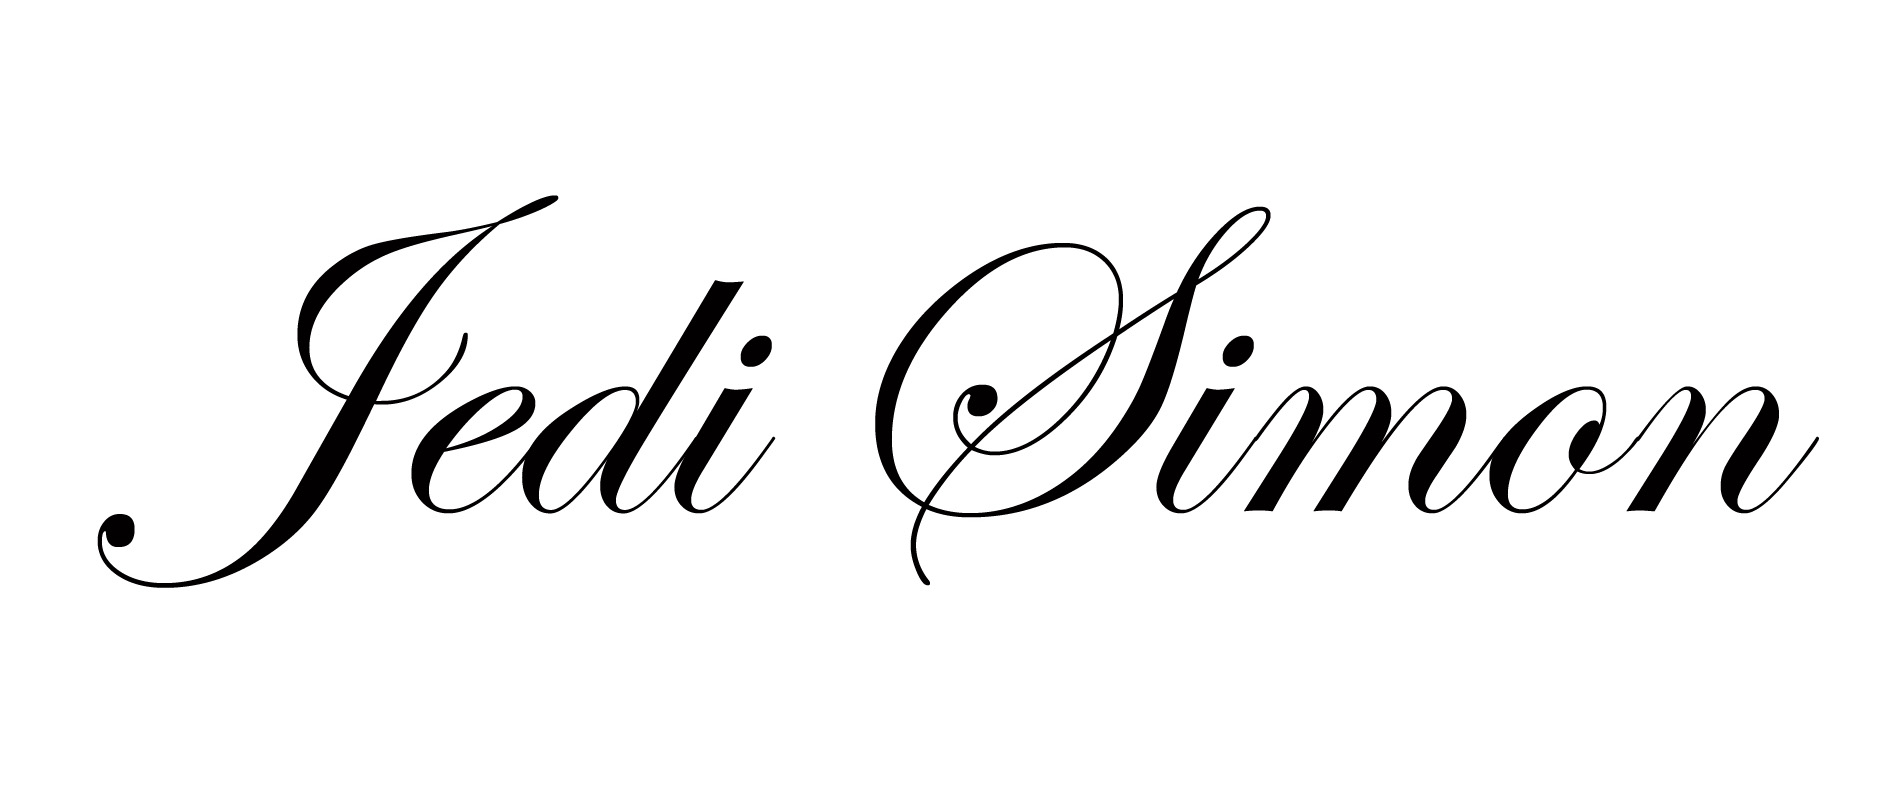 JEDI SIMON Signature